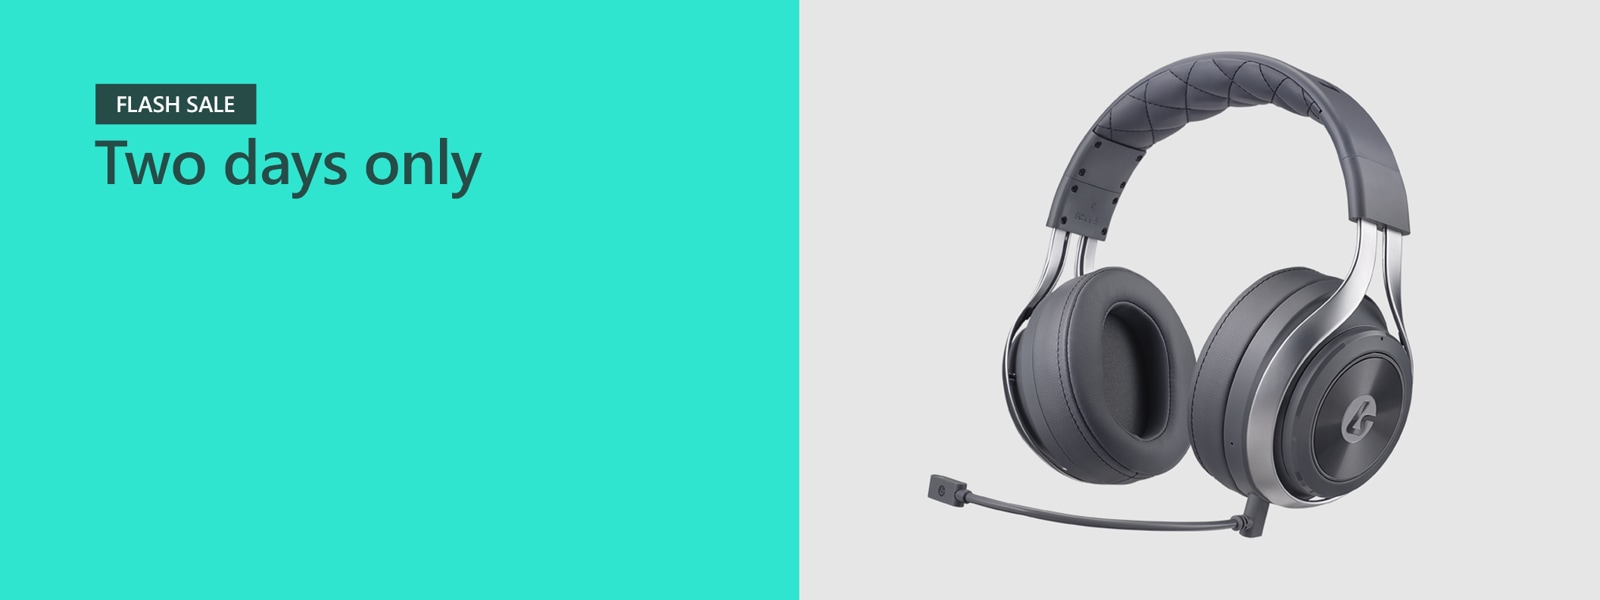 Lucidsound gaming headset.